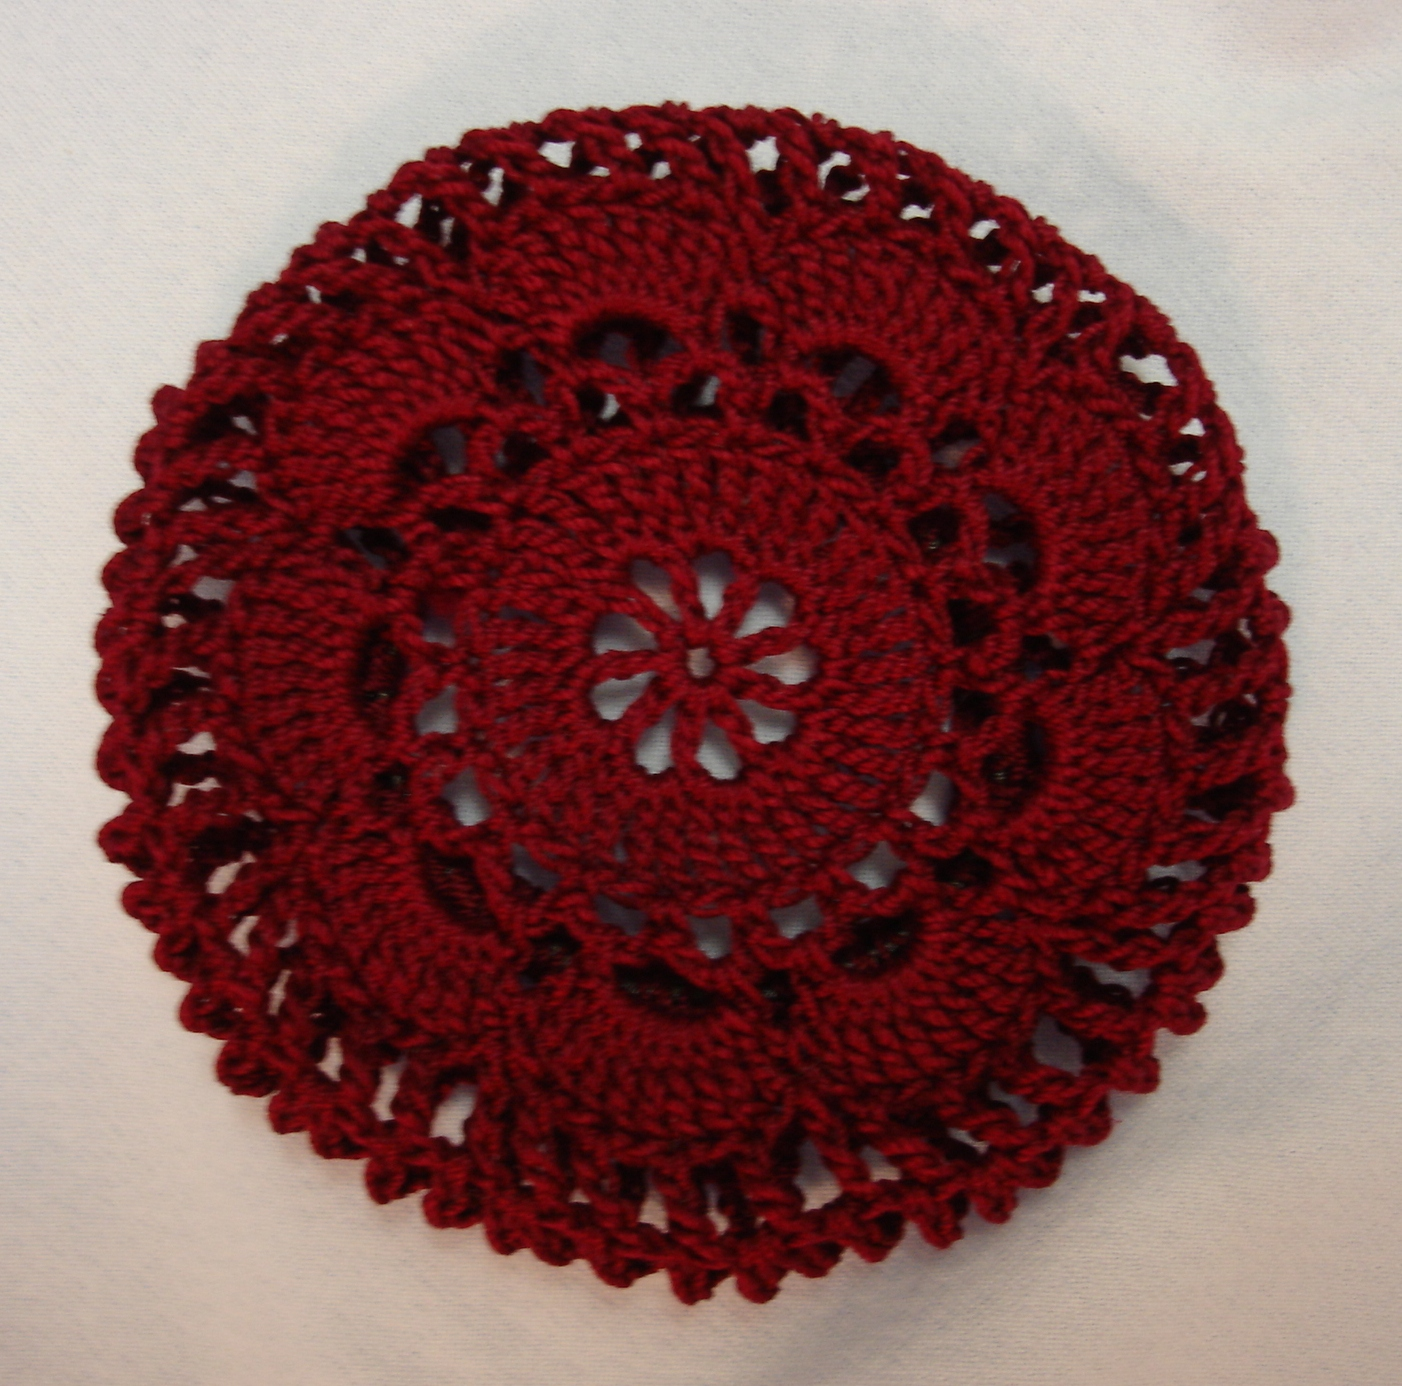 Crochet Net : Burgundy Crocheted Hair Net Bun Cover Amish Mennonite merrydeals4u